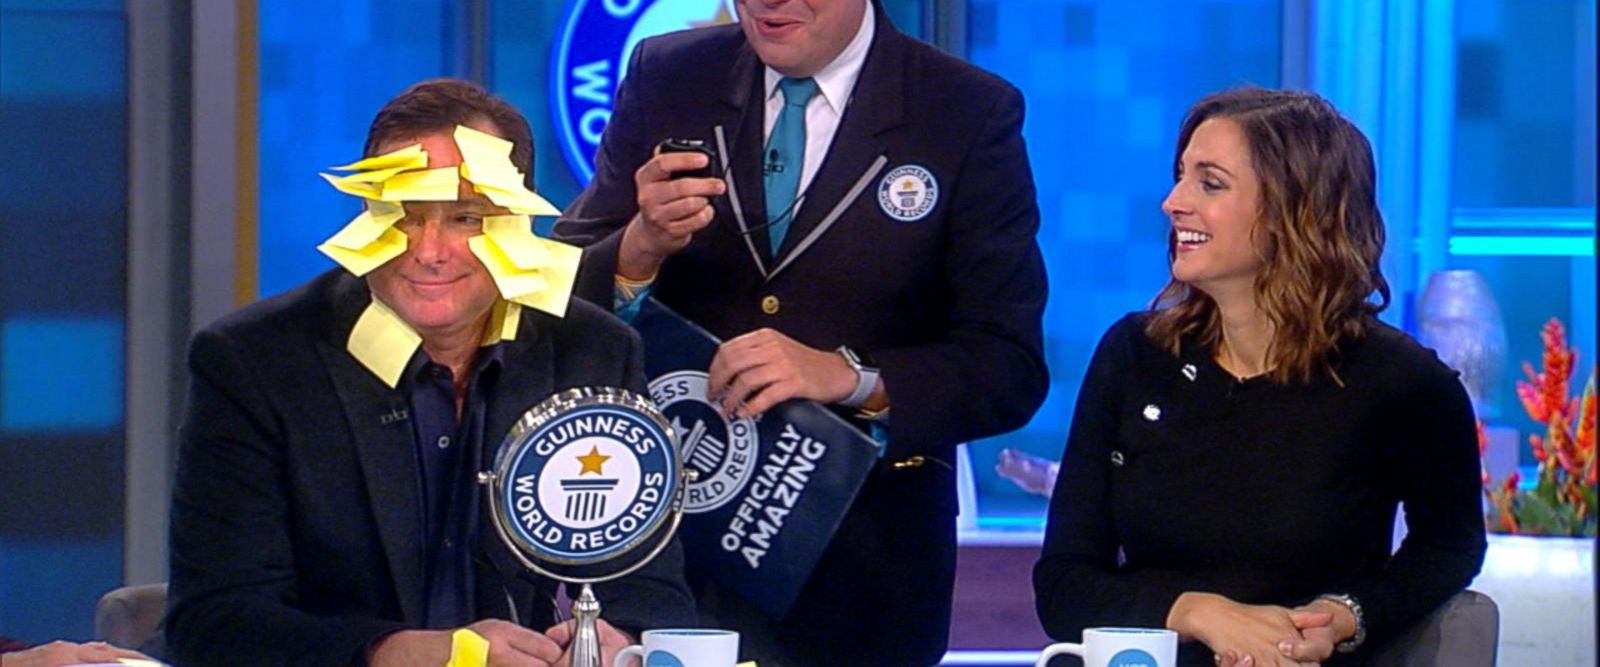 VIDEO: Bob Saget attempts Guinness world record of most sticky notes to the face in one minute